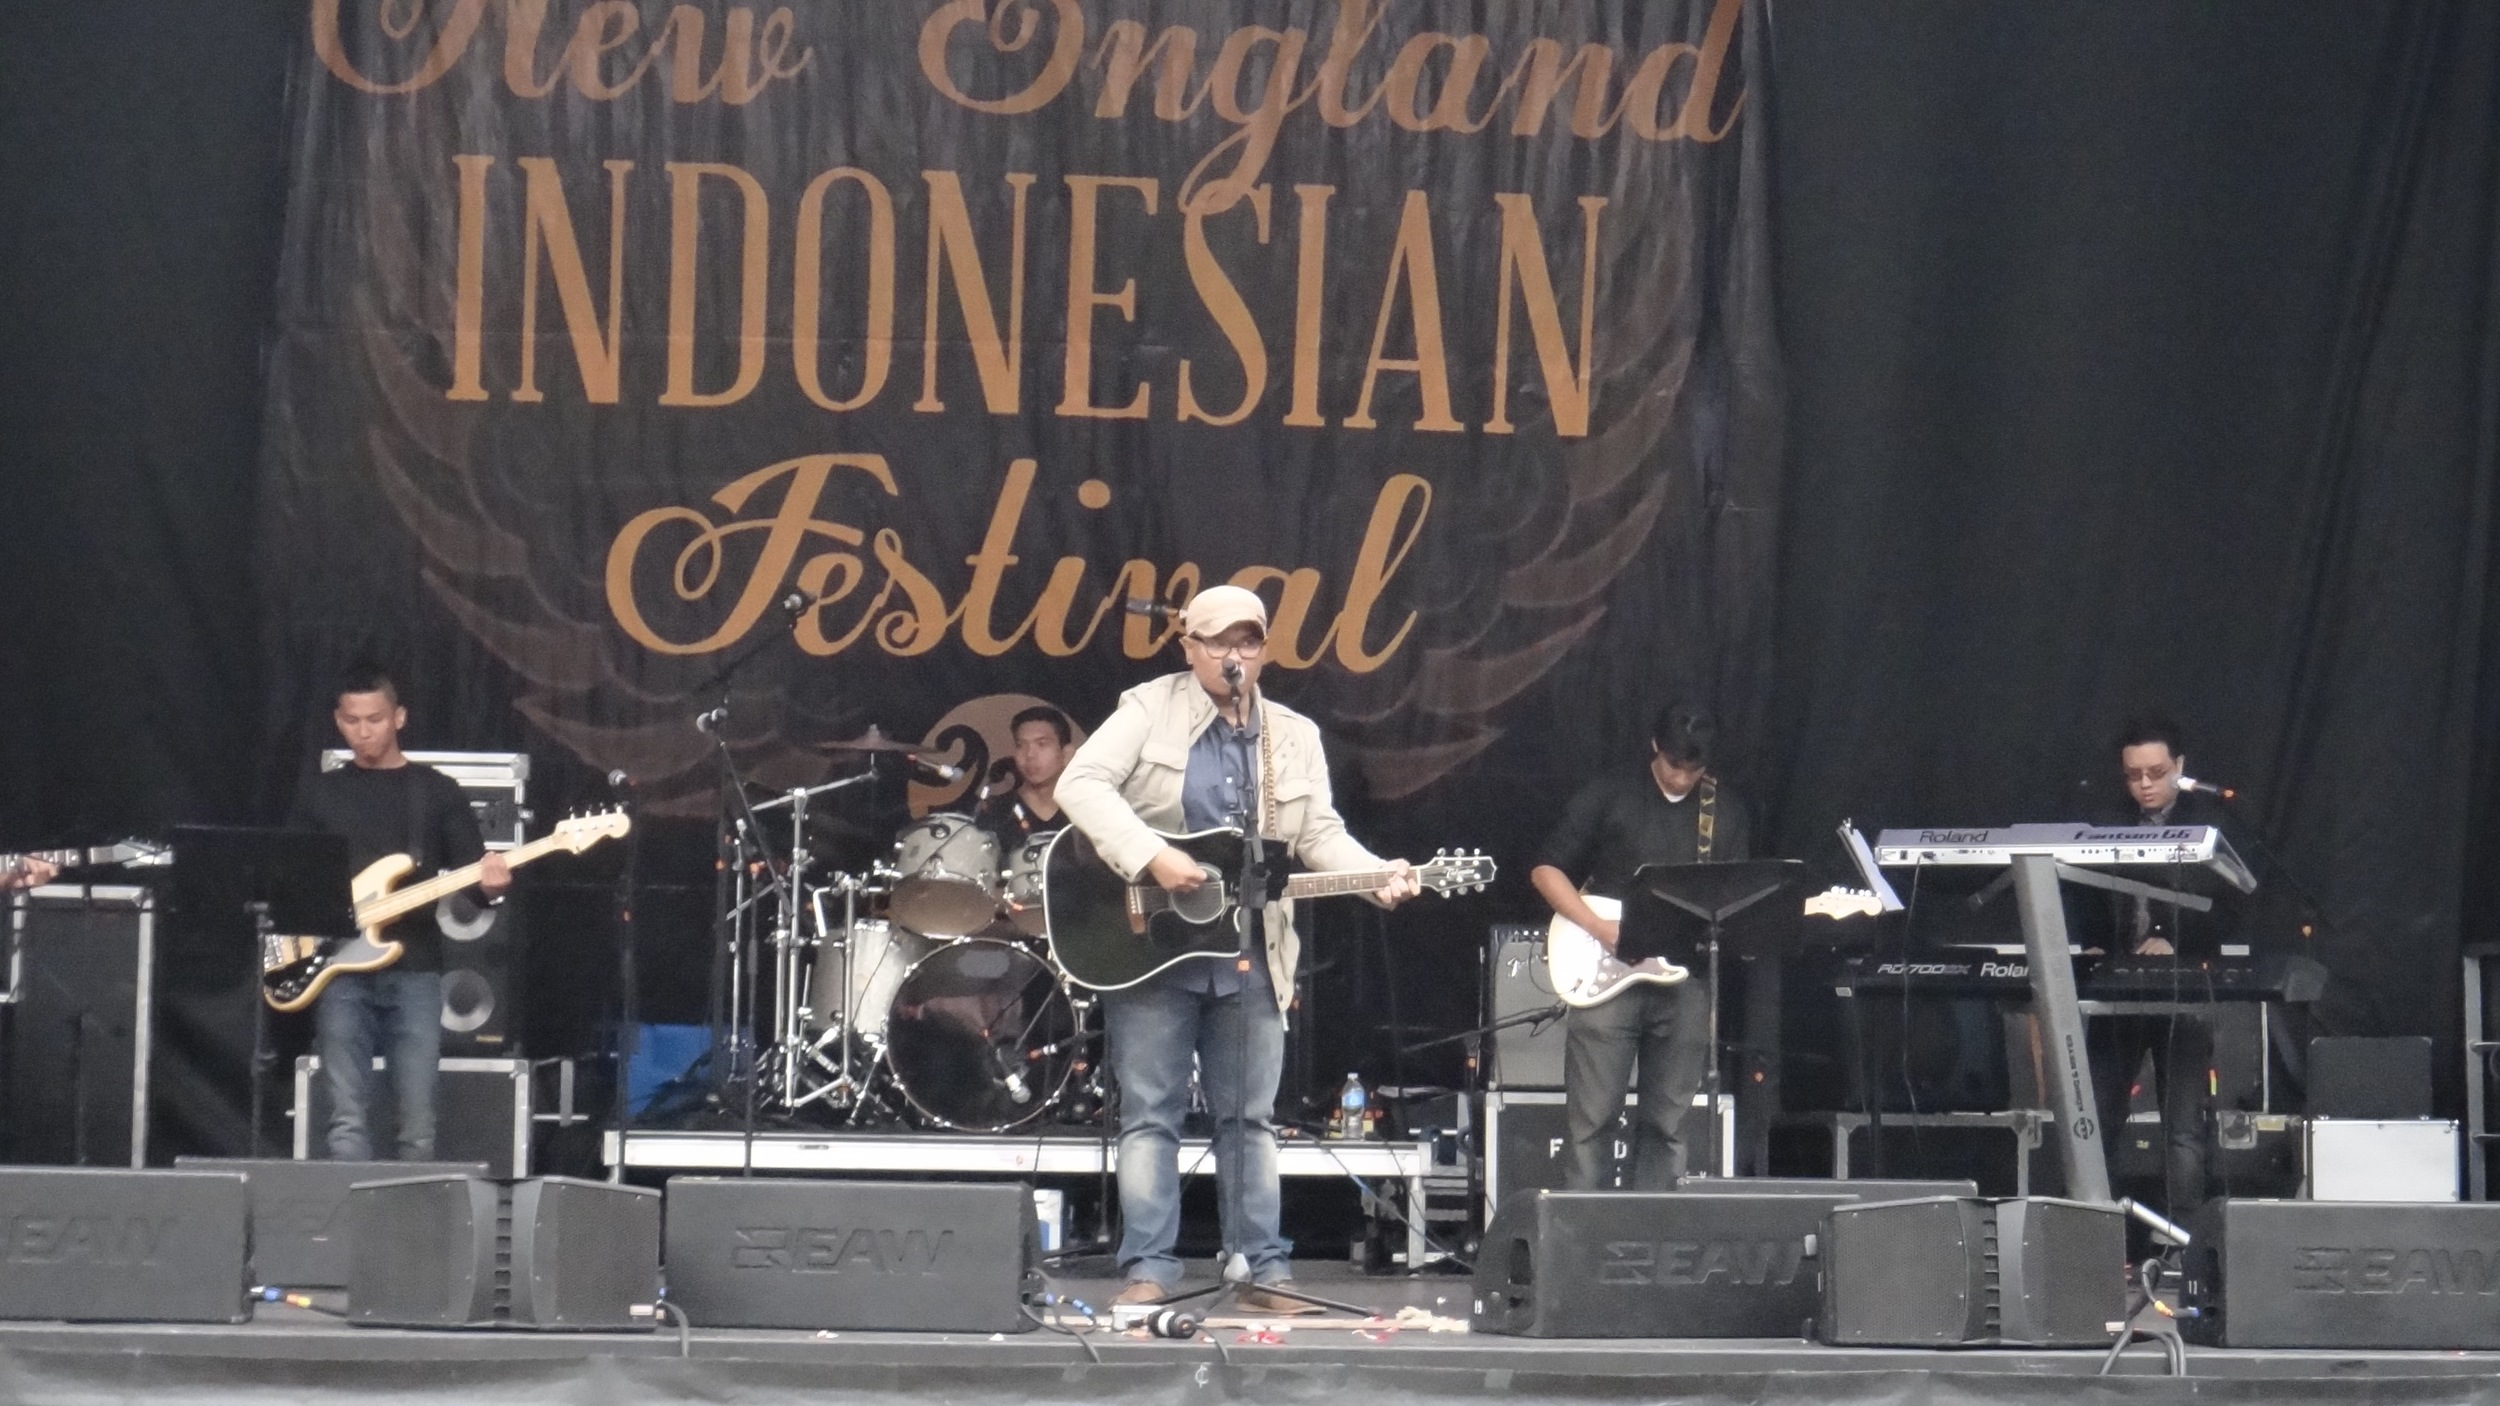 Arranged and played at 2015 New England Indonesian Festival , Copley Square Boston